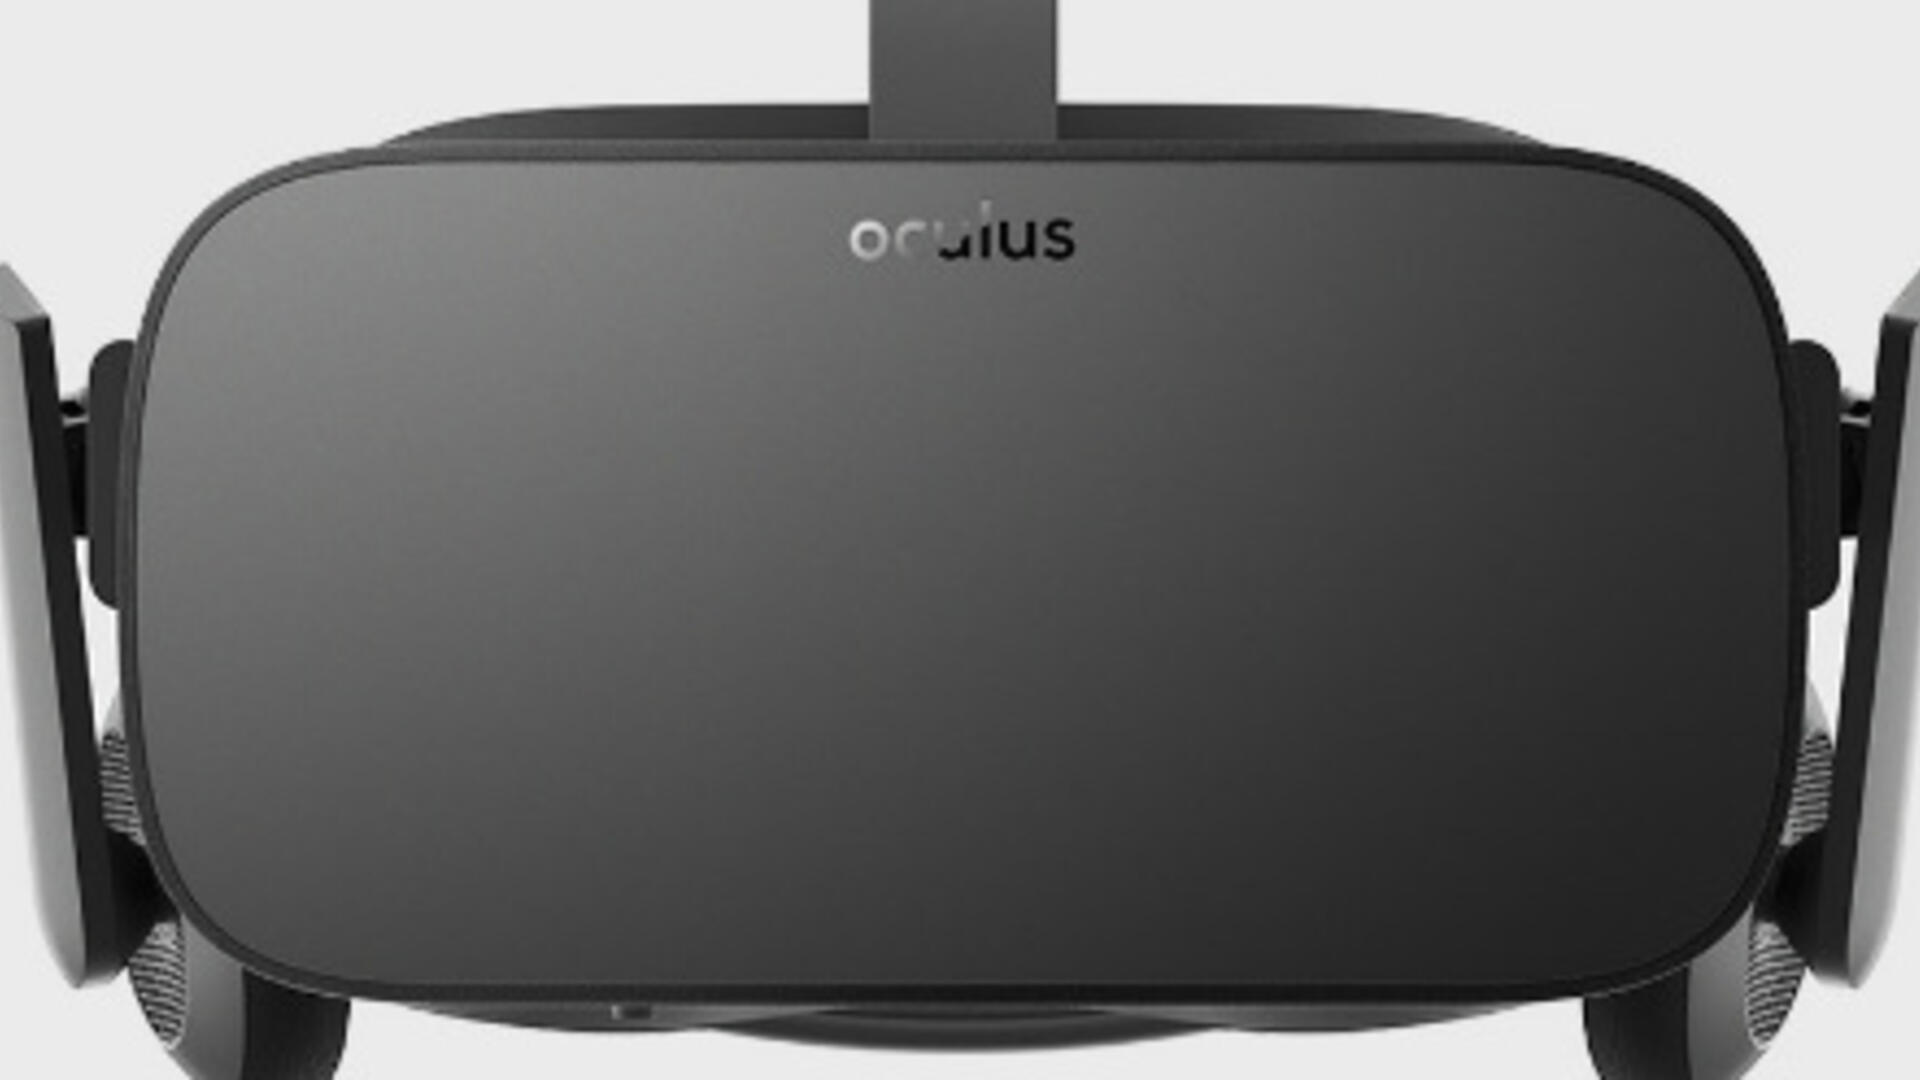 Oculus Rift VR Headsets Patched After Going Offline, Includes $15 Store Credit (Update)